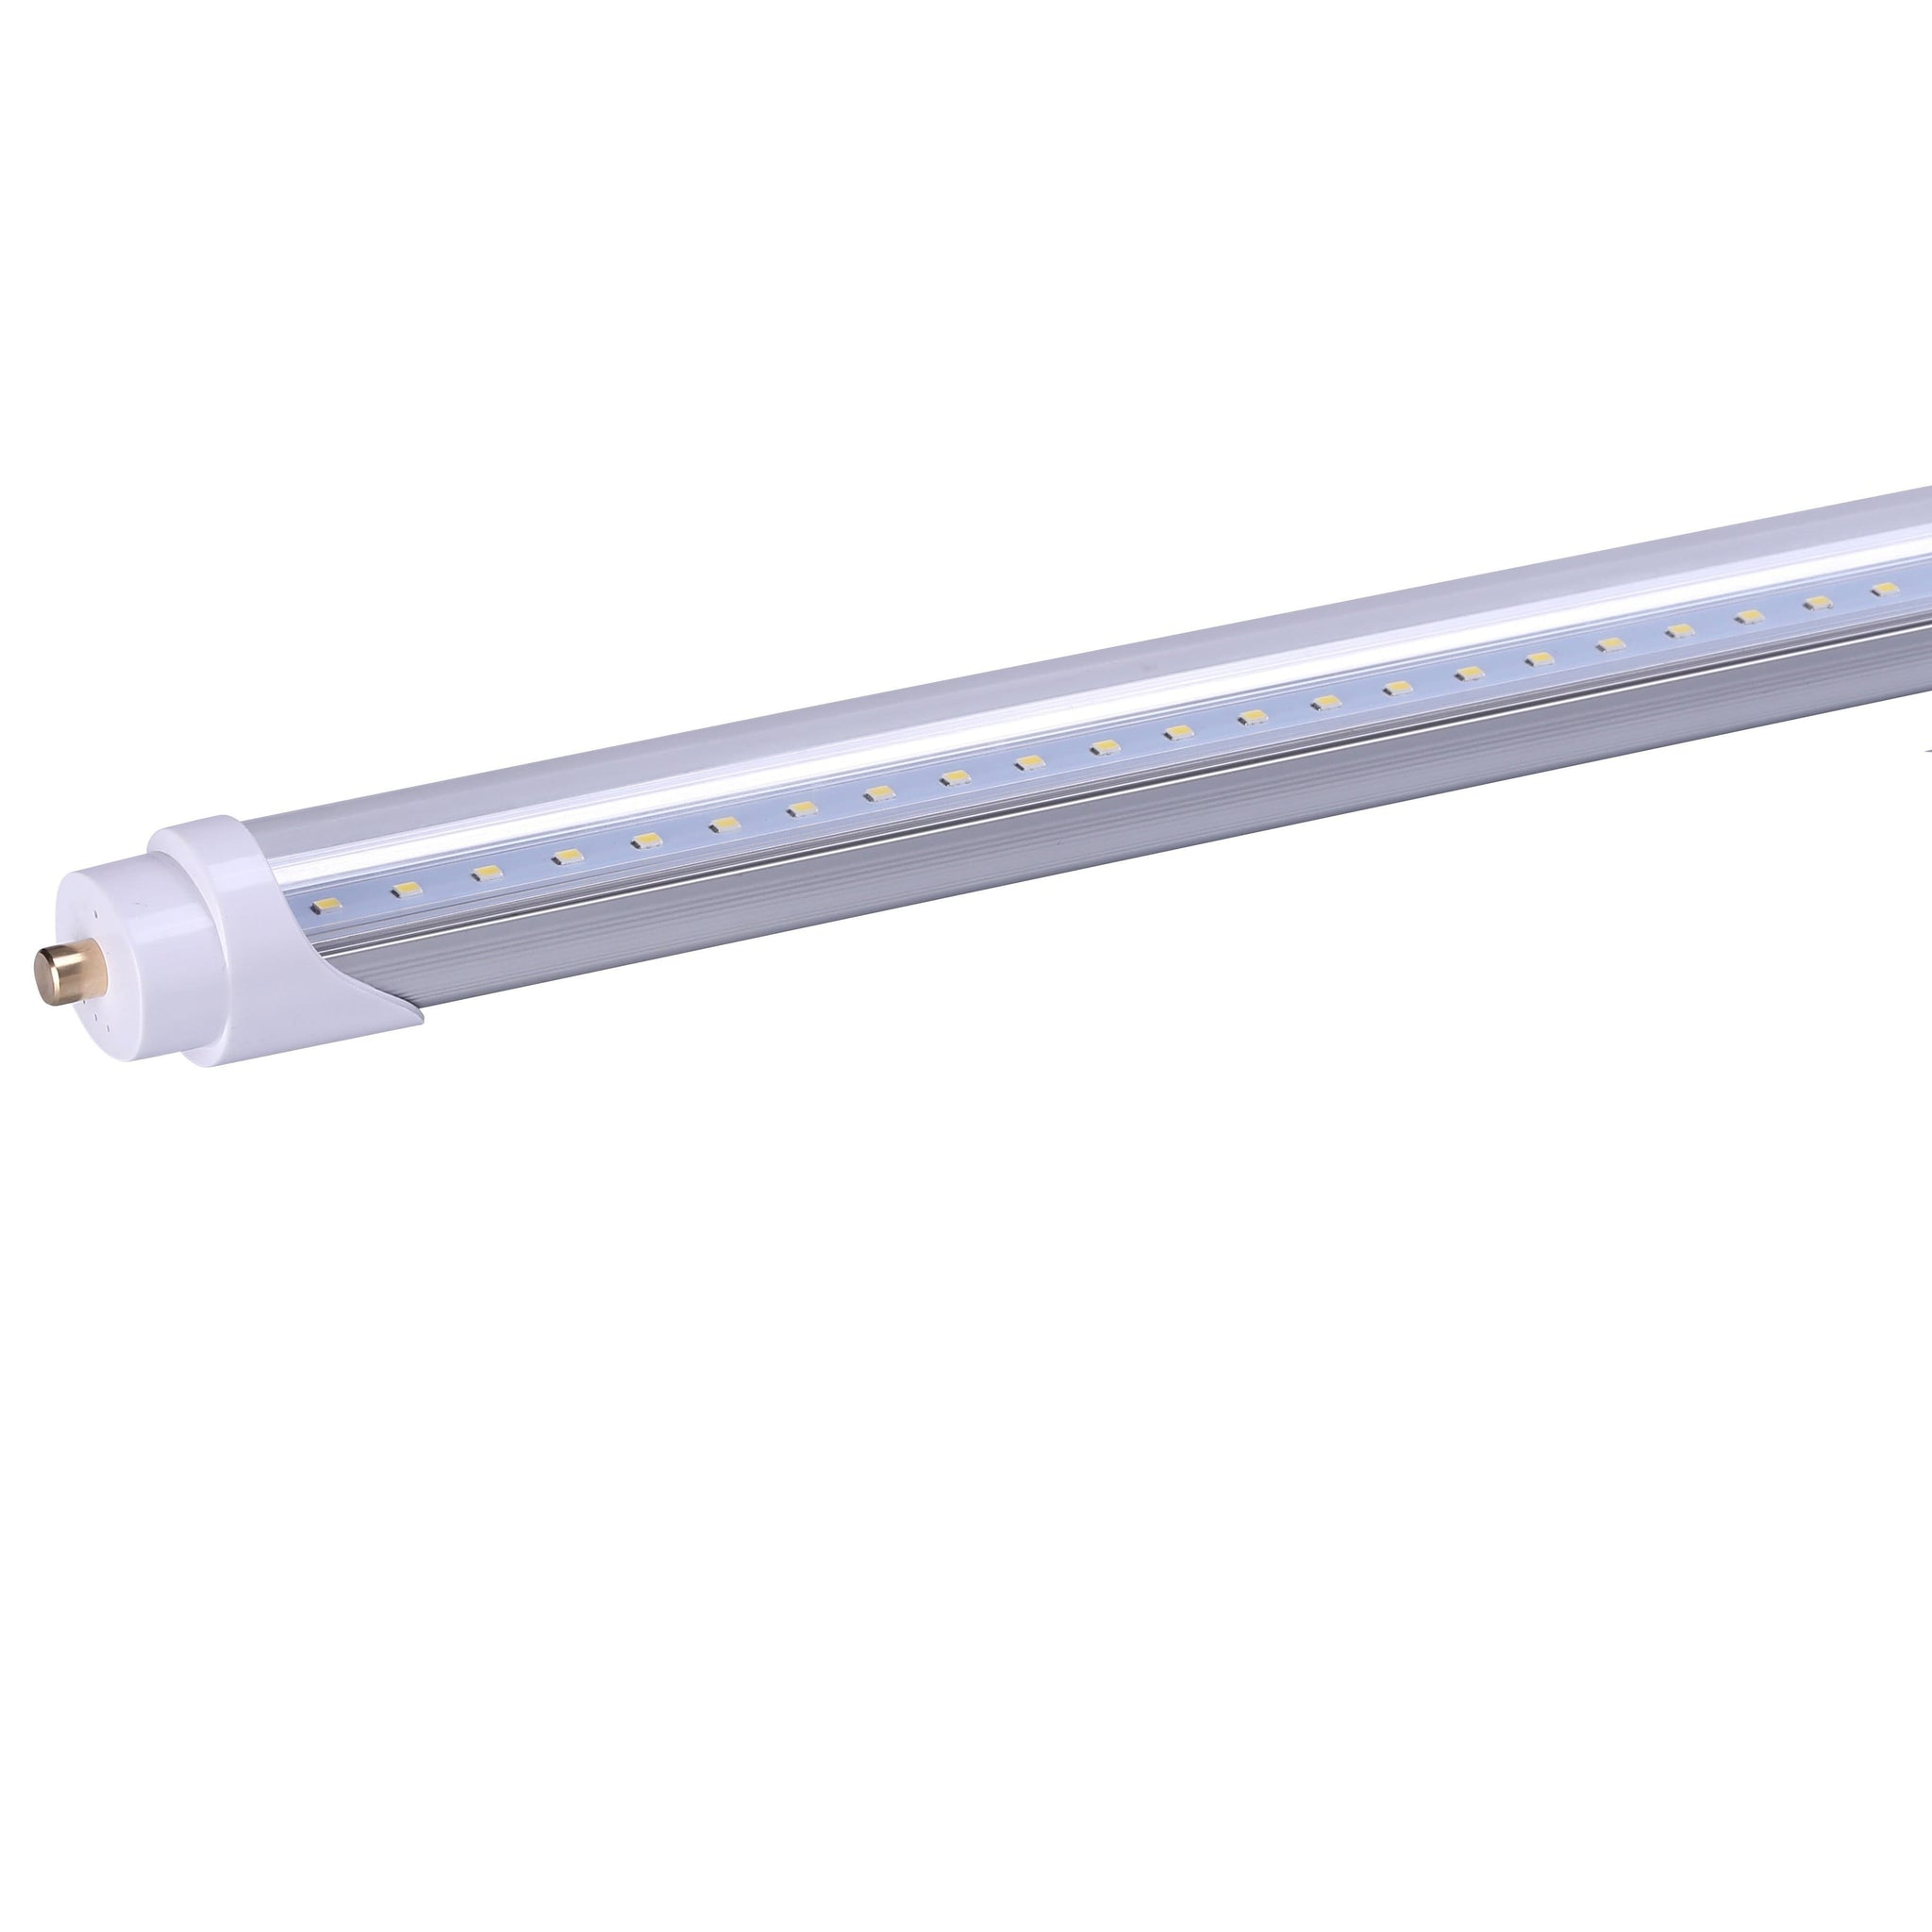 LED Direct Wire Tube 8FT 36W Single Pin-25PCS/CTN